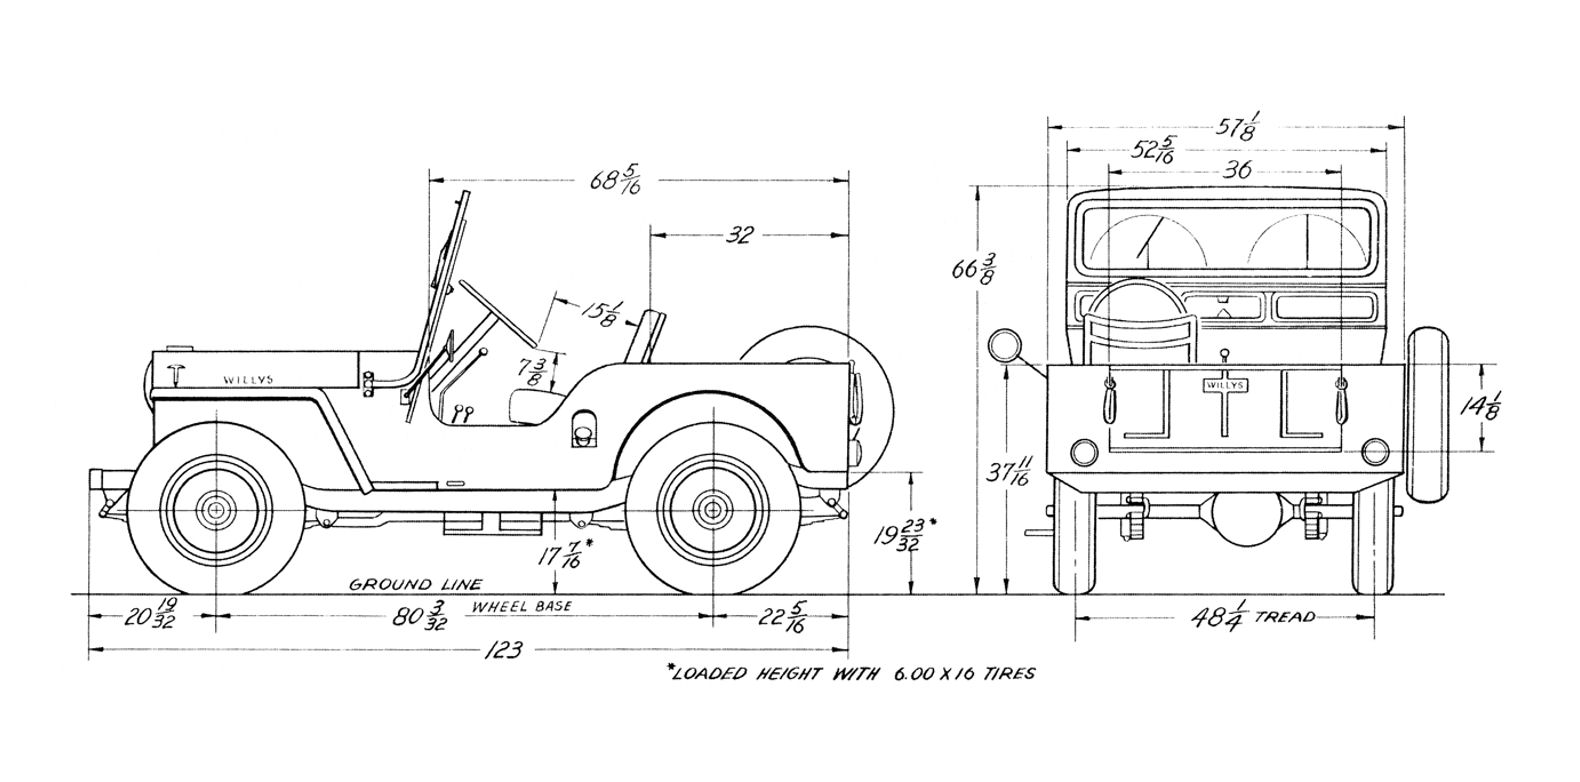 hight resolution of willy cj2 jeep wiring diagram